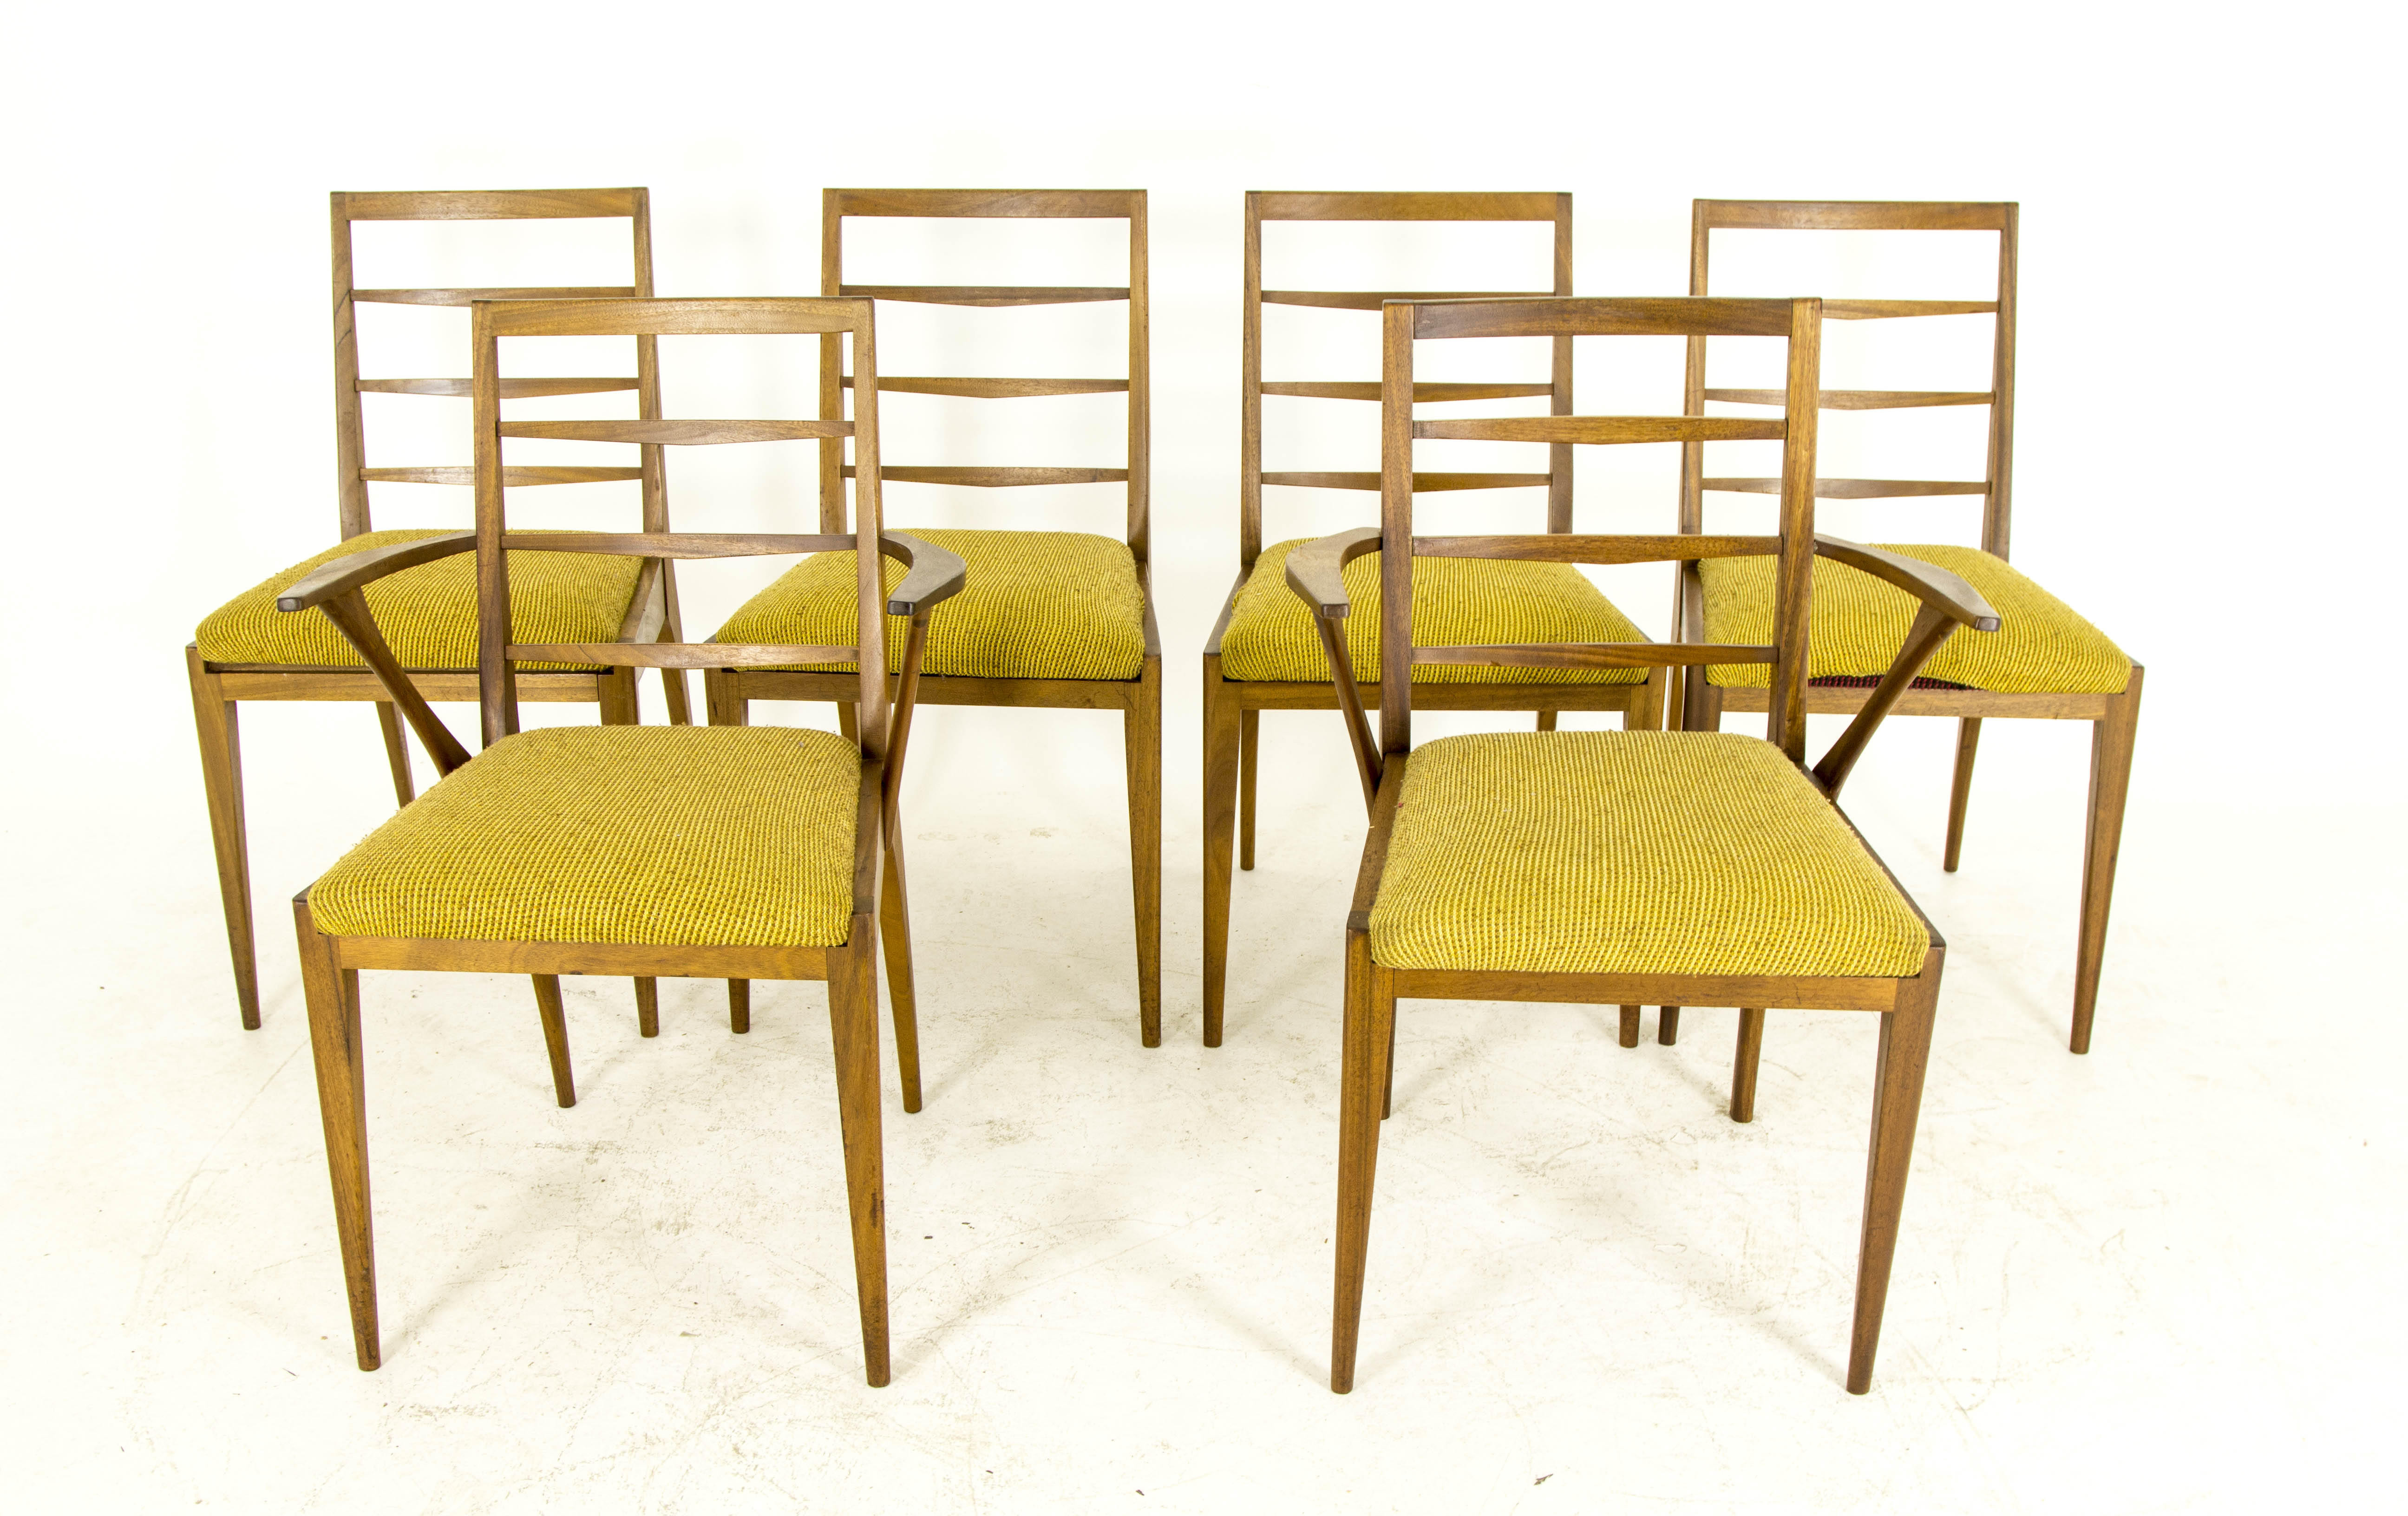 Sensational Six Teak Dining Chairs Mid Century Modern Chairs 4 2 Chairs By G Plan B507 Bralicious Painted Fabric Chair Ideas Braliciousco